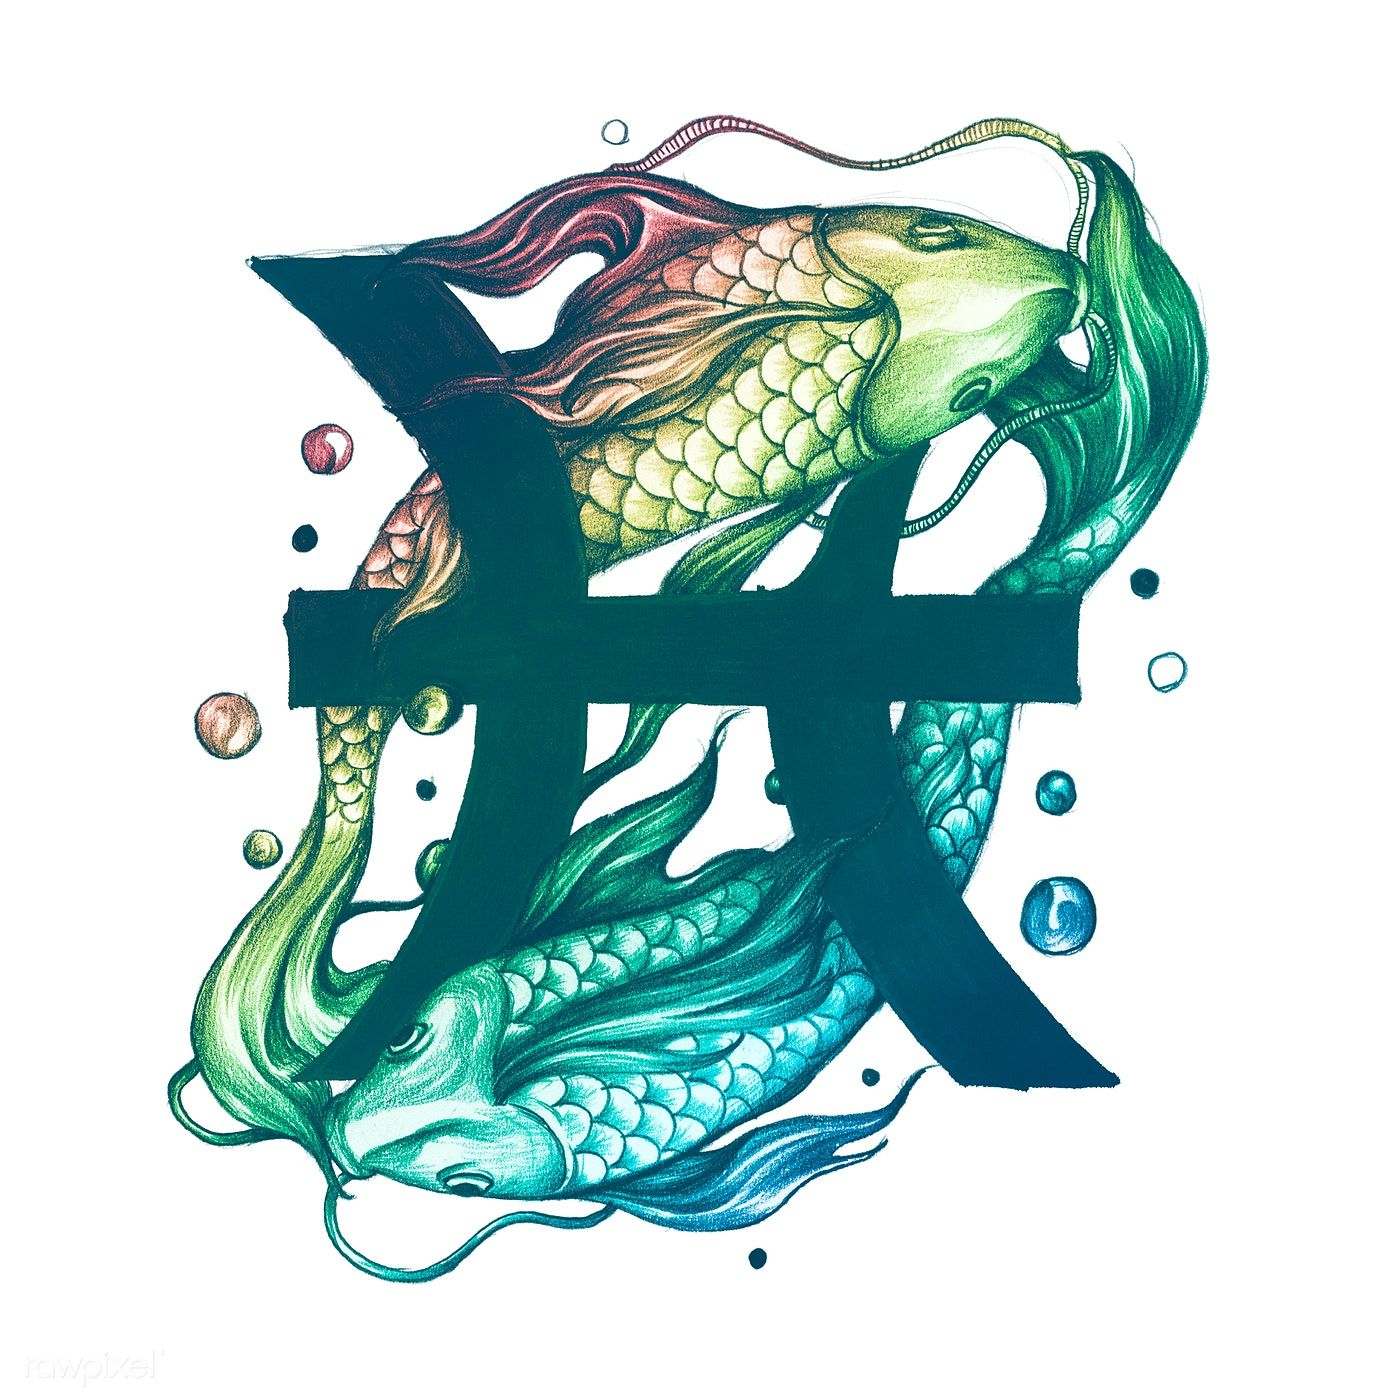 Hand drawn horoscope symbol of Pisces illustration | premium image by rawpixel.com / Donlaya